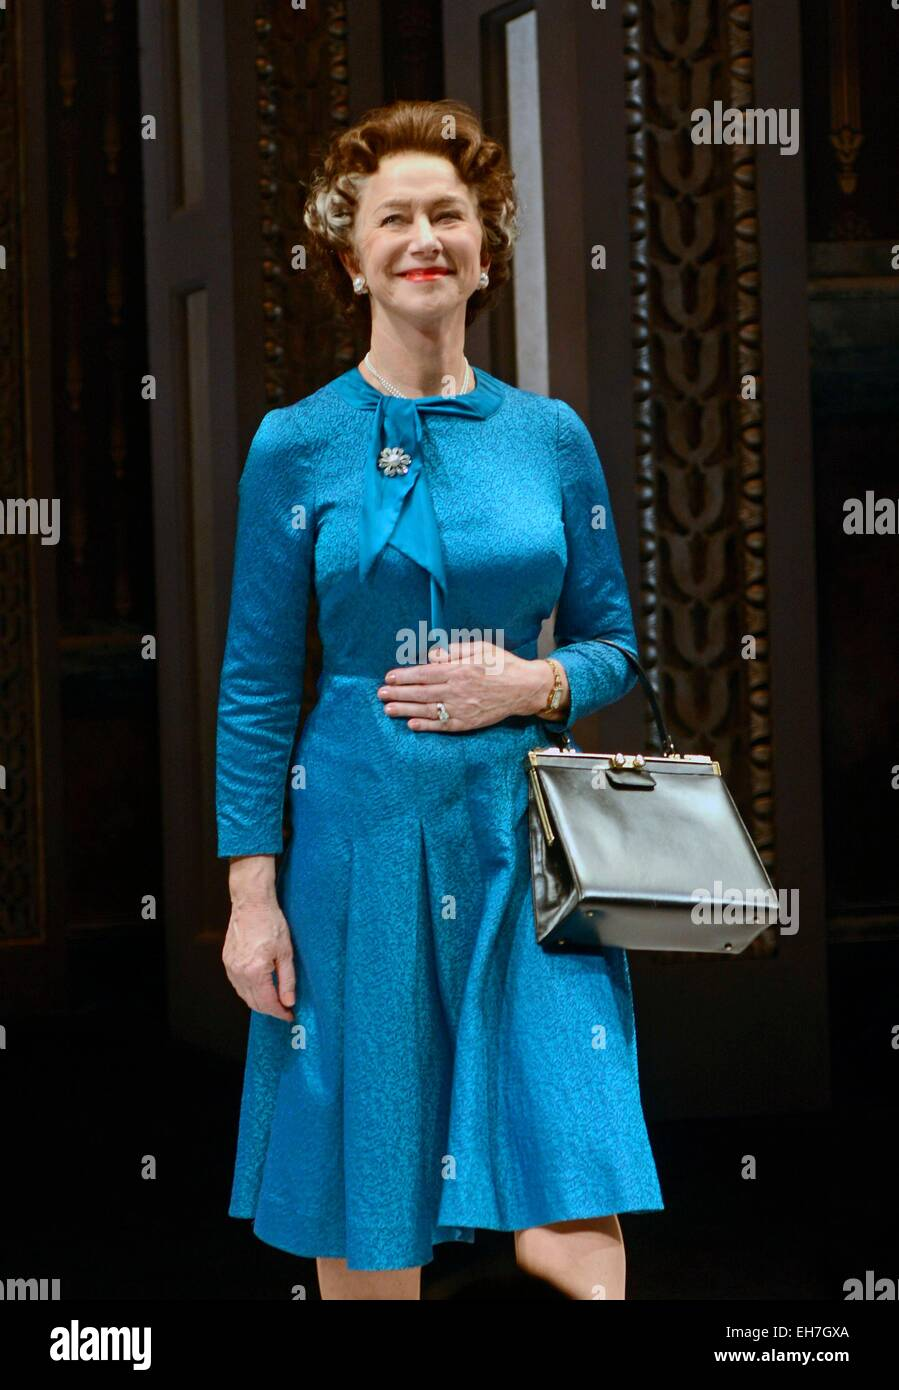 New York, NY, USA. 8th Mar, 2015. Helen Mirren in attendance for THE AUDIENCE Opening Night on Broadway, Gerald Stock Photo